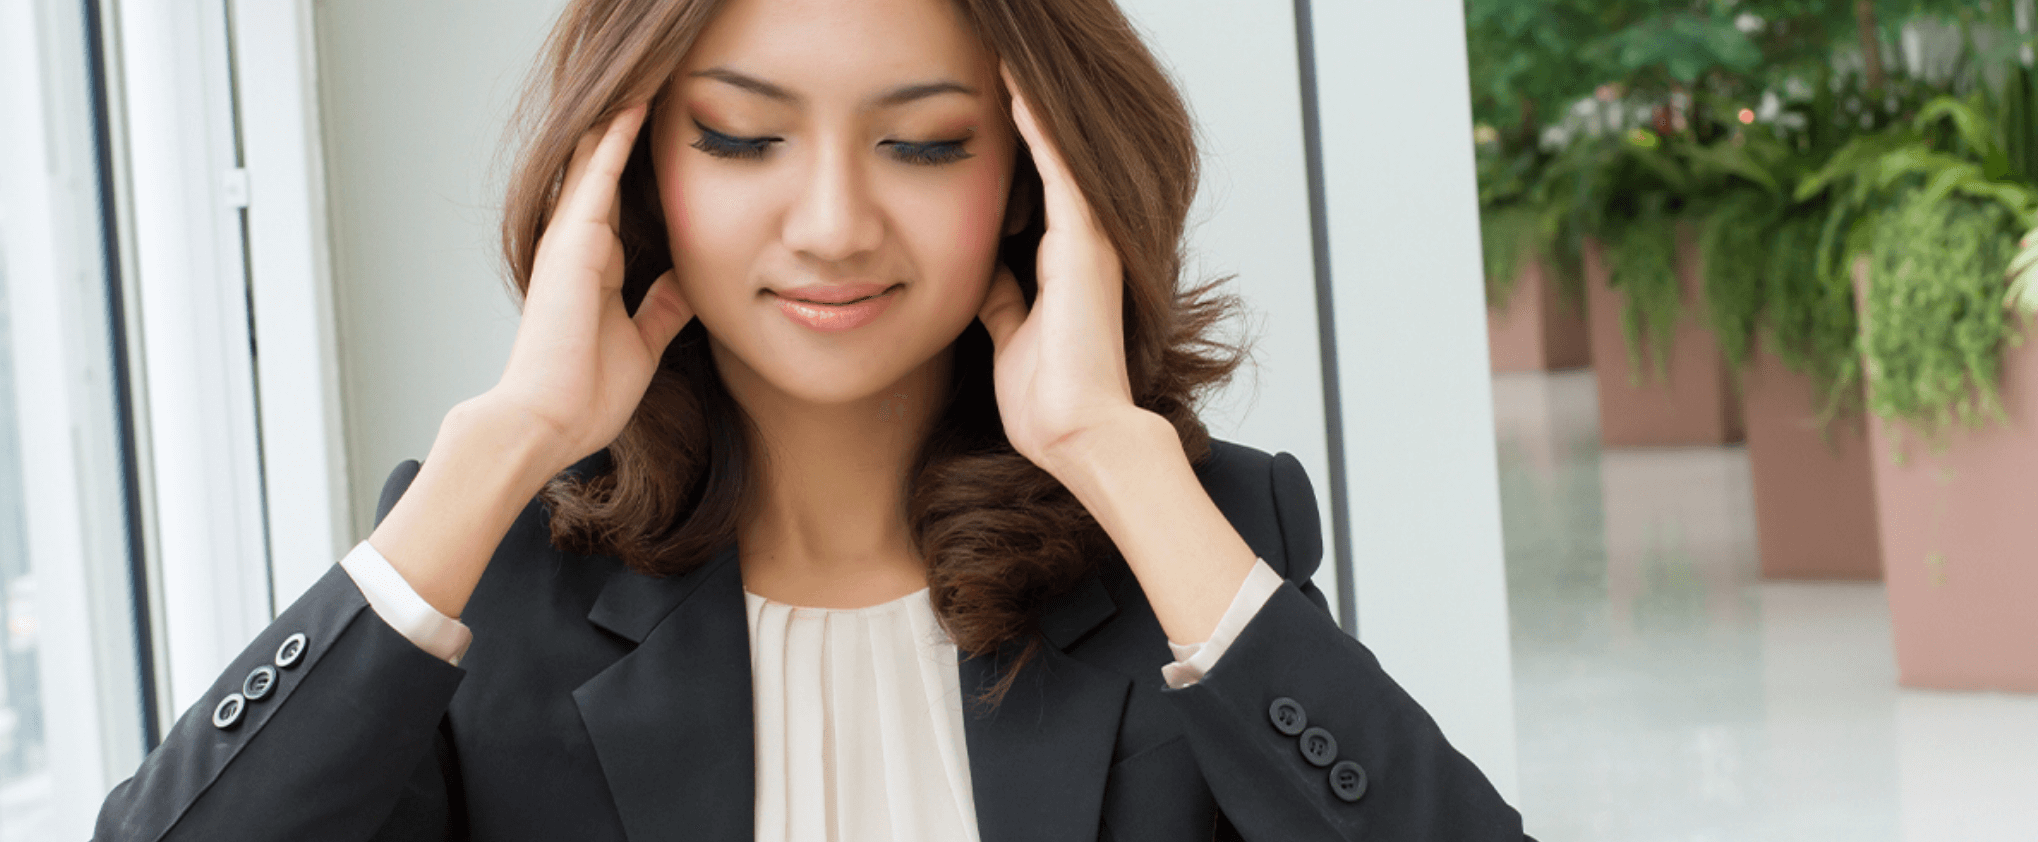 relieve-tension-headaches-with-physical-therapy